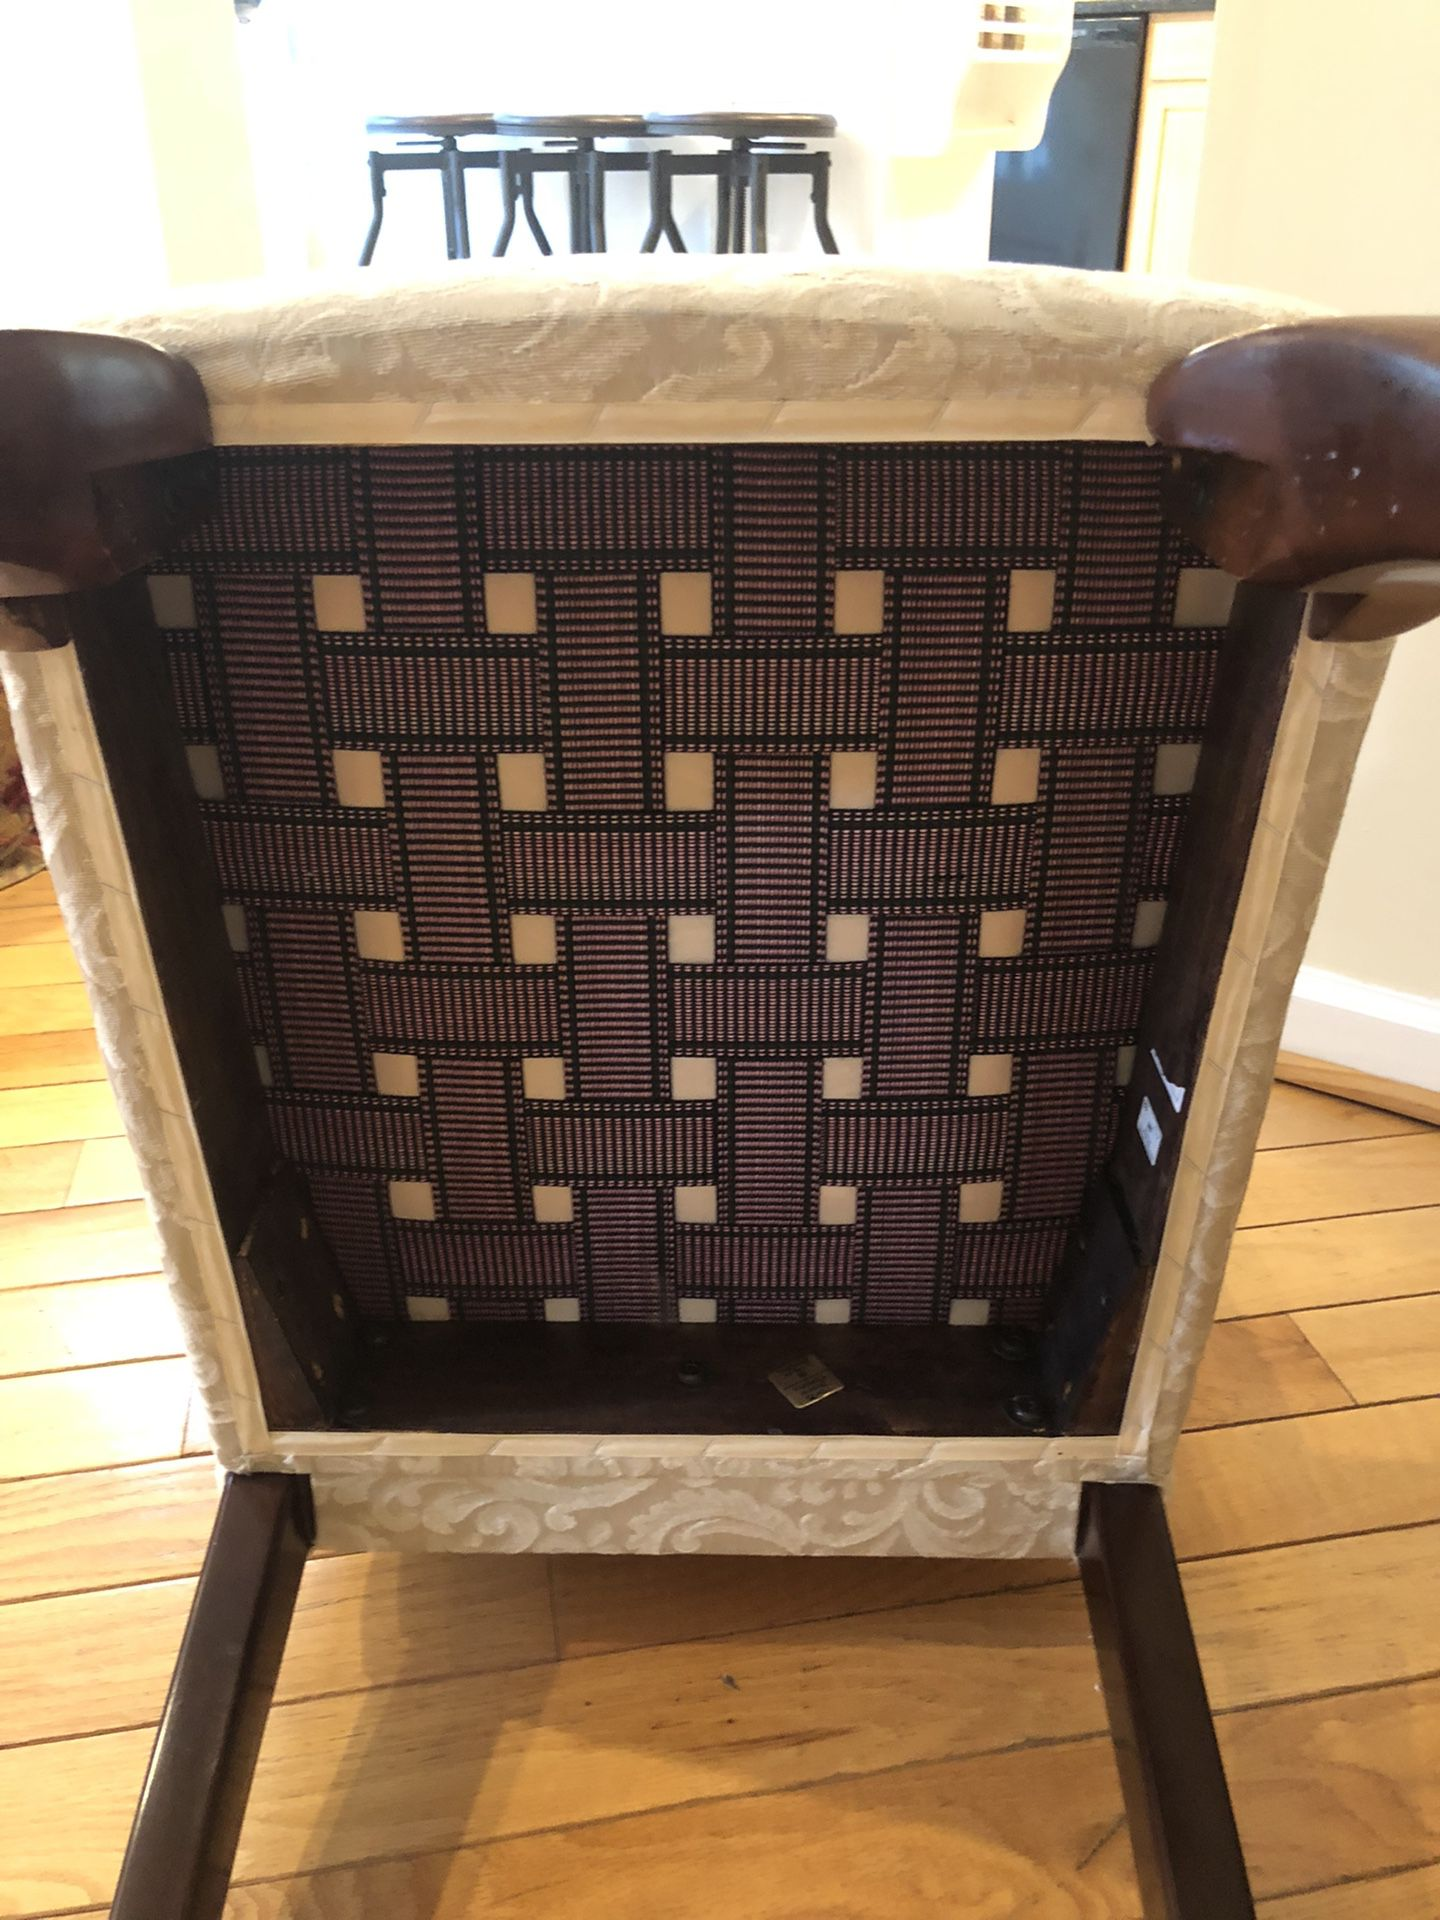 Chairs - The Bombay Company (2 Chairs)